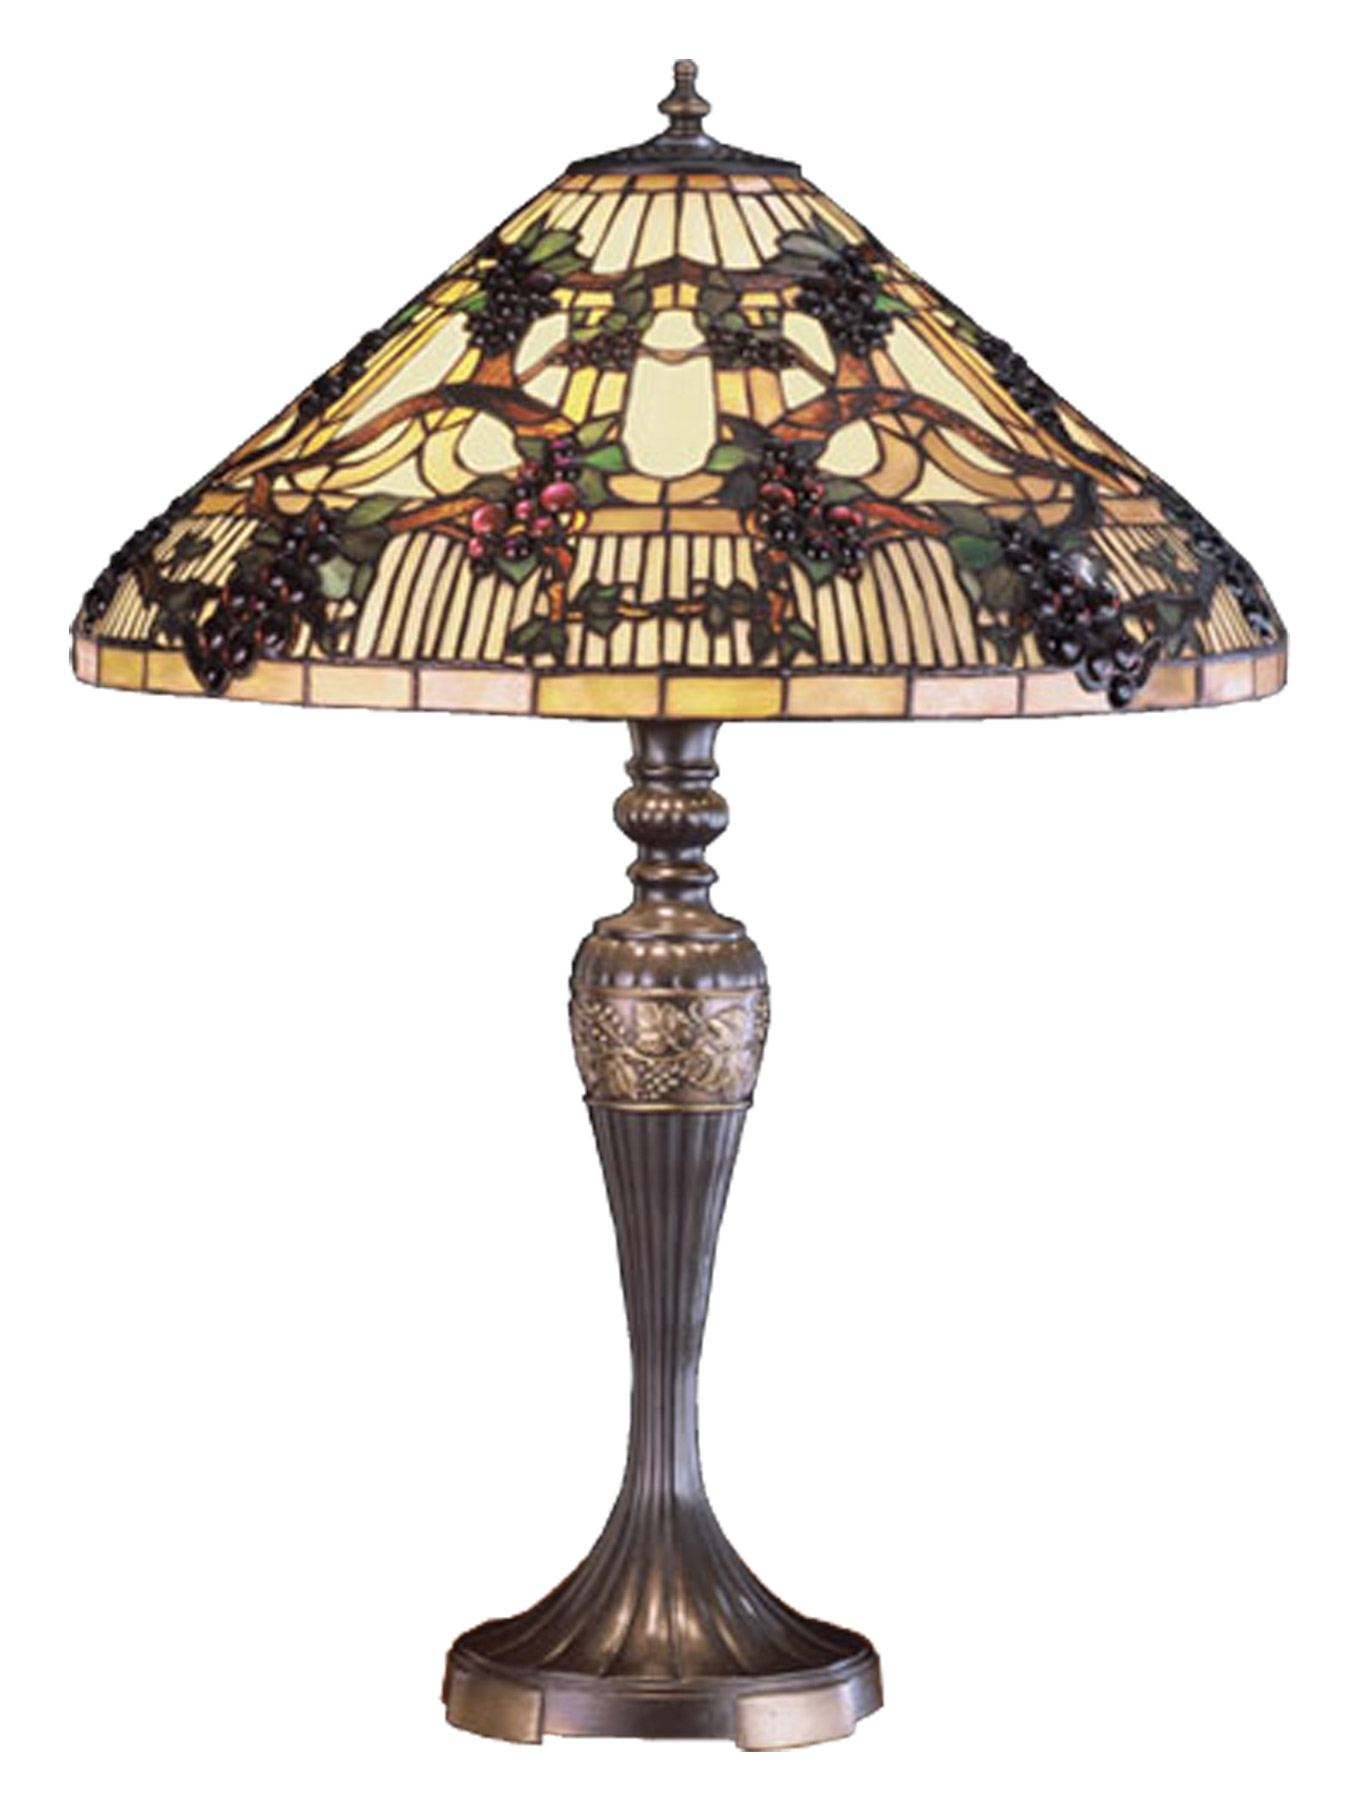 home lamps table lamps standard table lamps meyda 52129. Black Bedroom Furniture Sets. Home Design Ideas